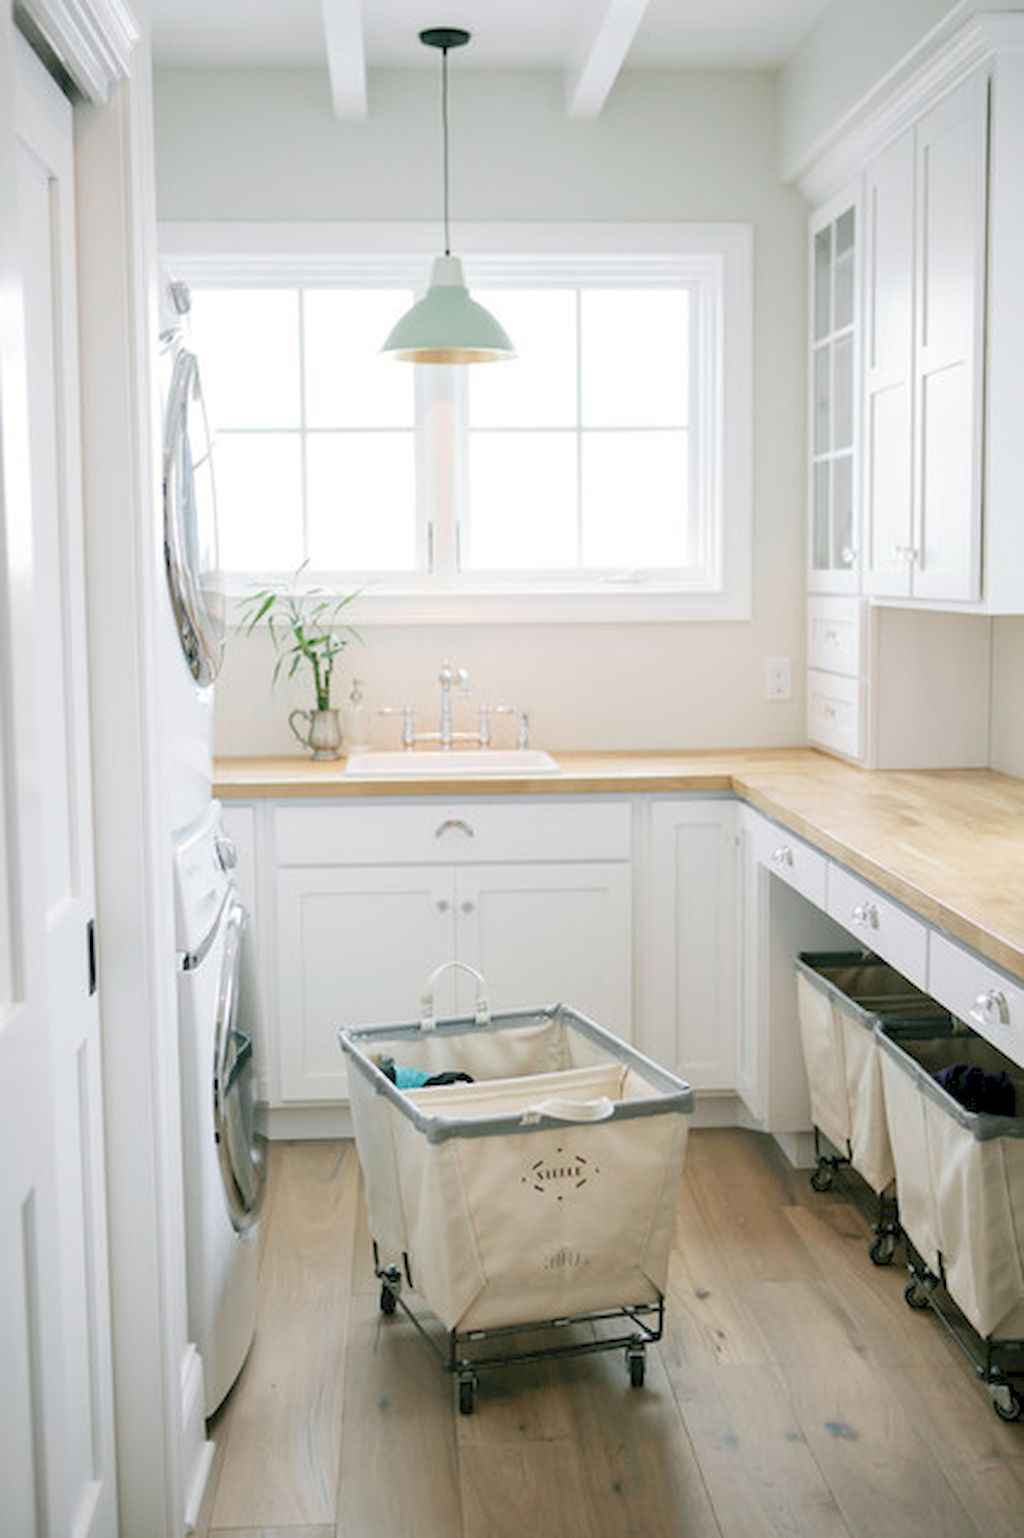 45 Rustic Farmhouse Laundry Room Design Ideas and Makeover (34)